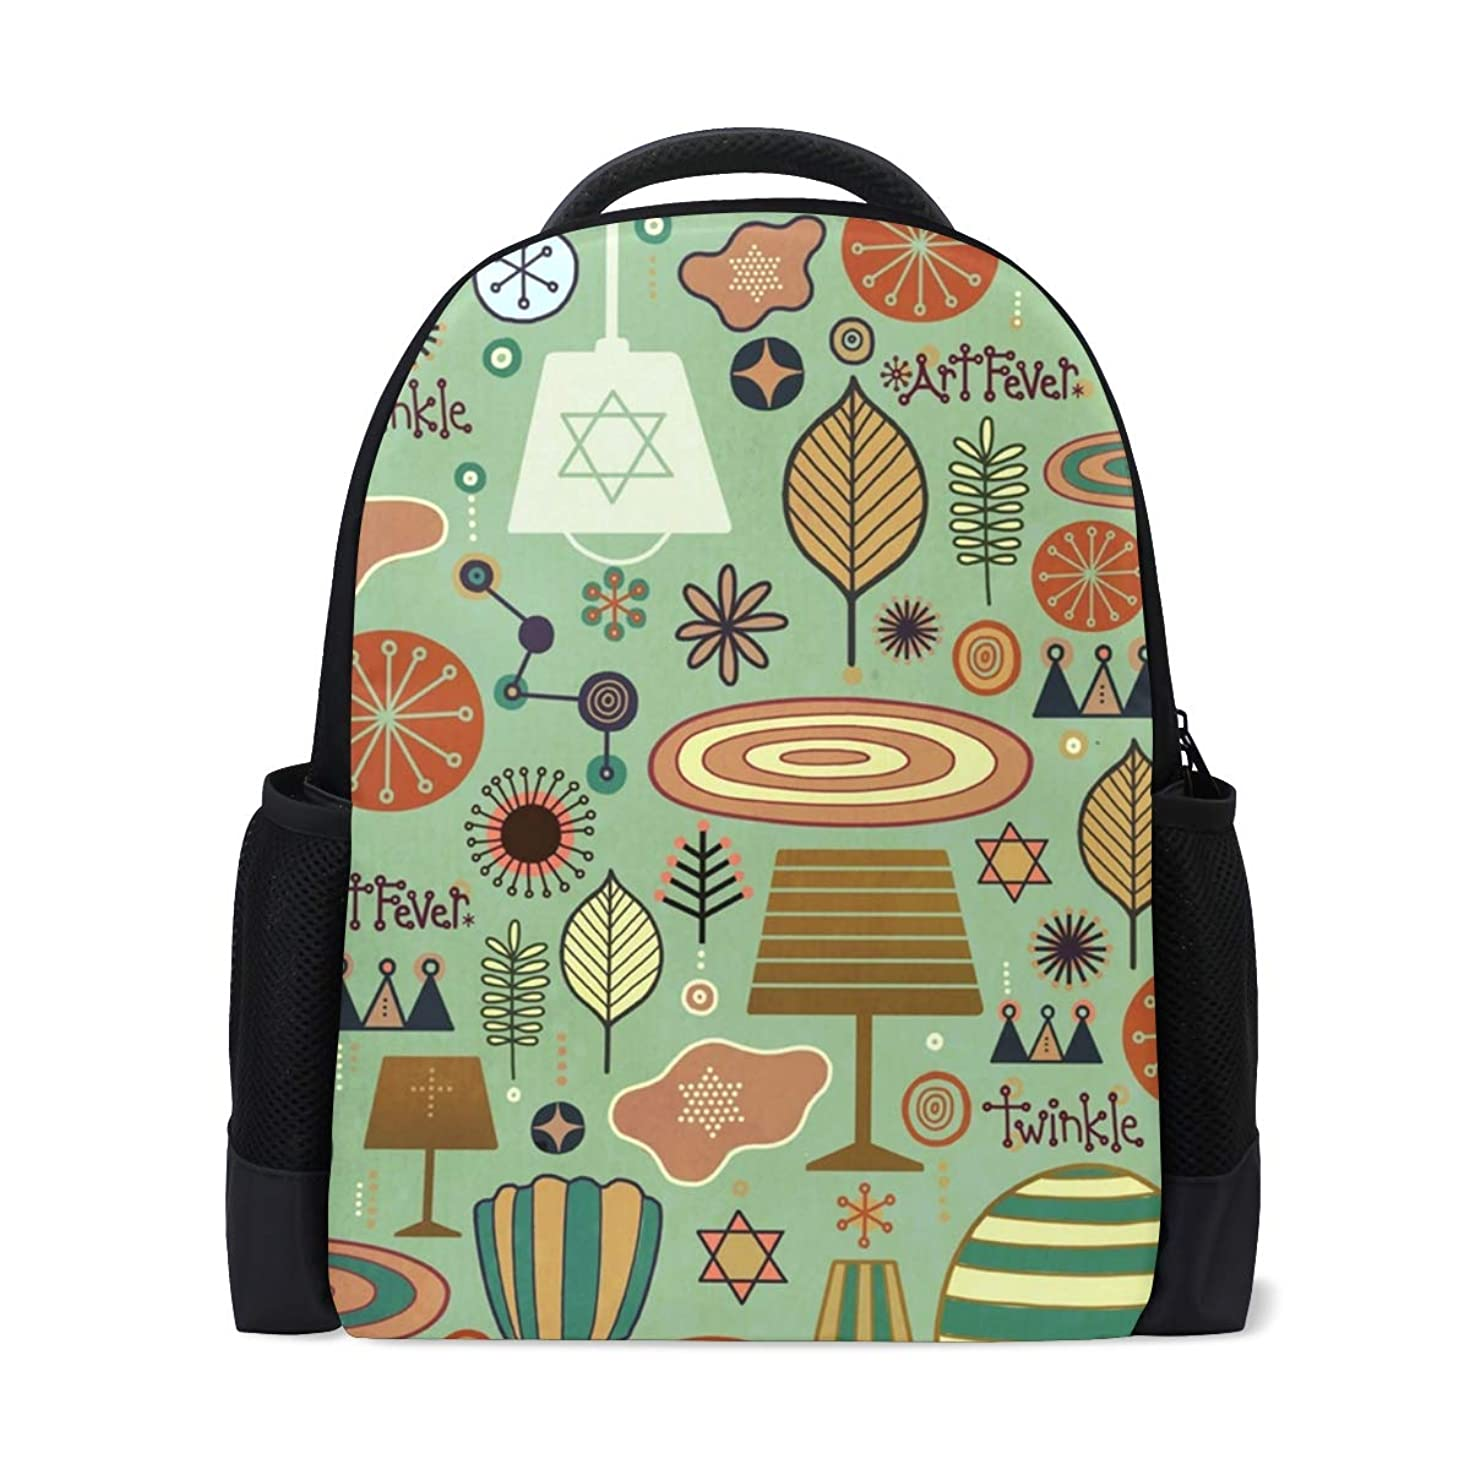 Student Backpacks College School Book Bag Travel Hiking Camping Daypack for boy for Girl | 16.1